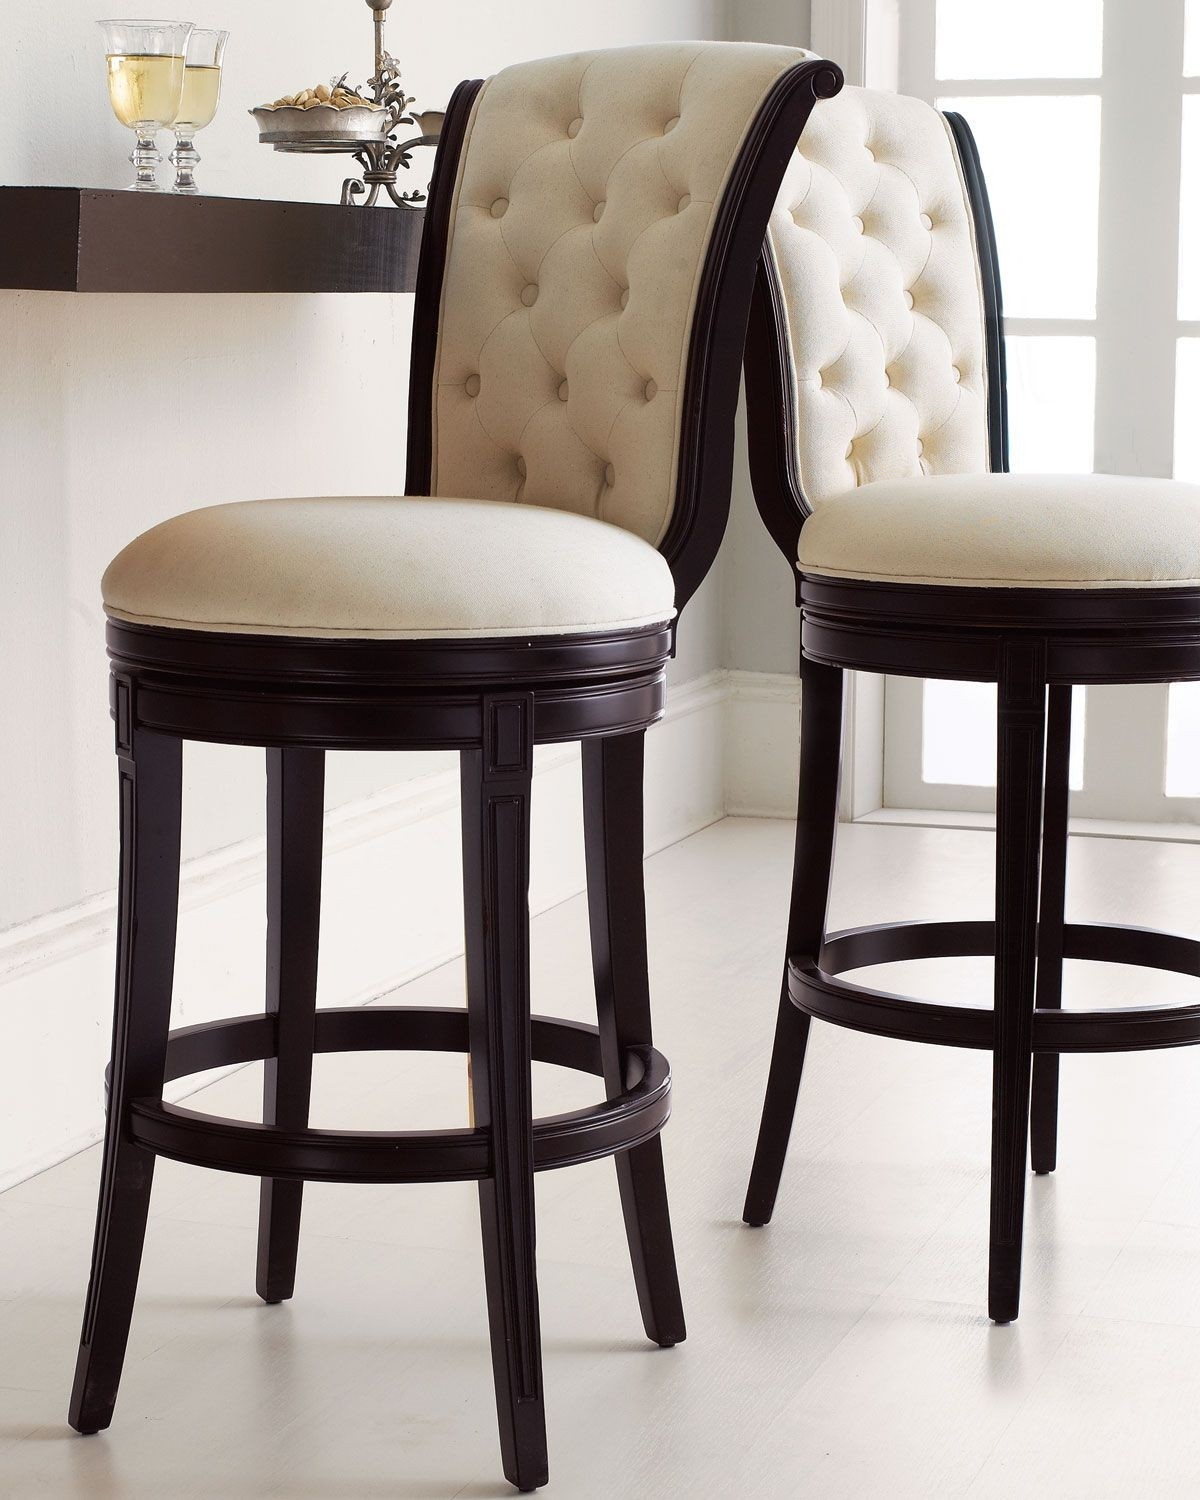 Swivel leather bar stools